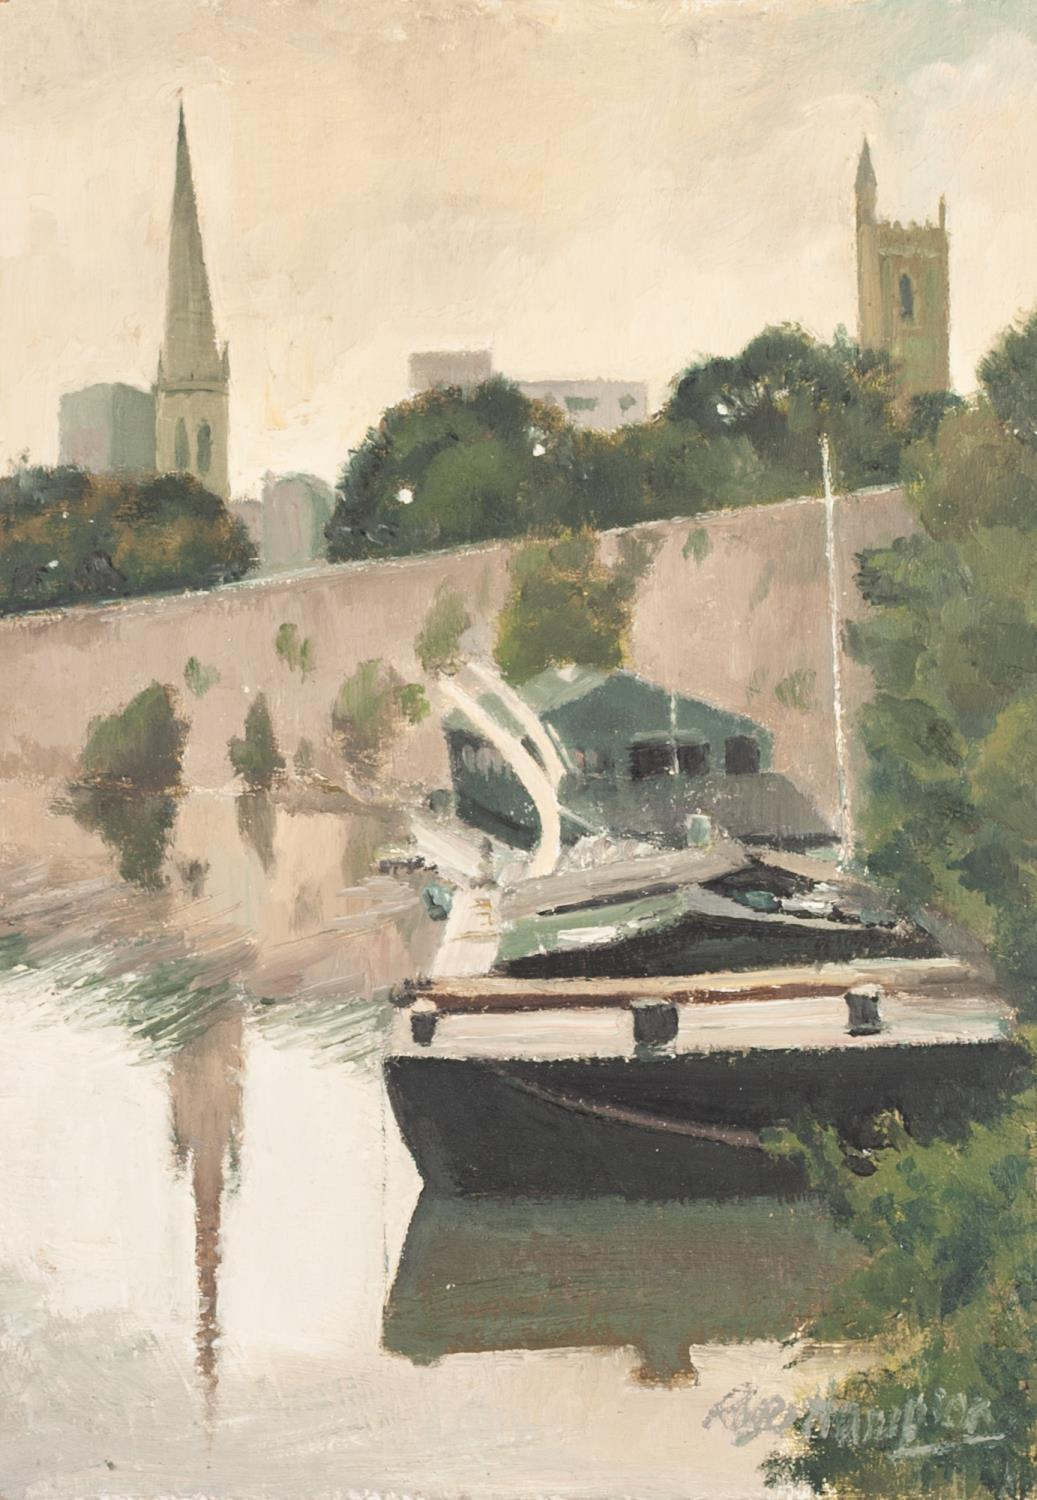 Lot 62 - ROGER HAMPSON (1925 - 1996) OIL PAINTING ON BOARD 'Floating Harbour, Bristol' Signed, titled and